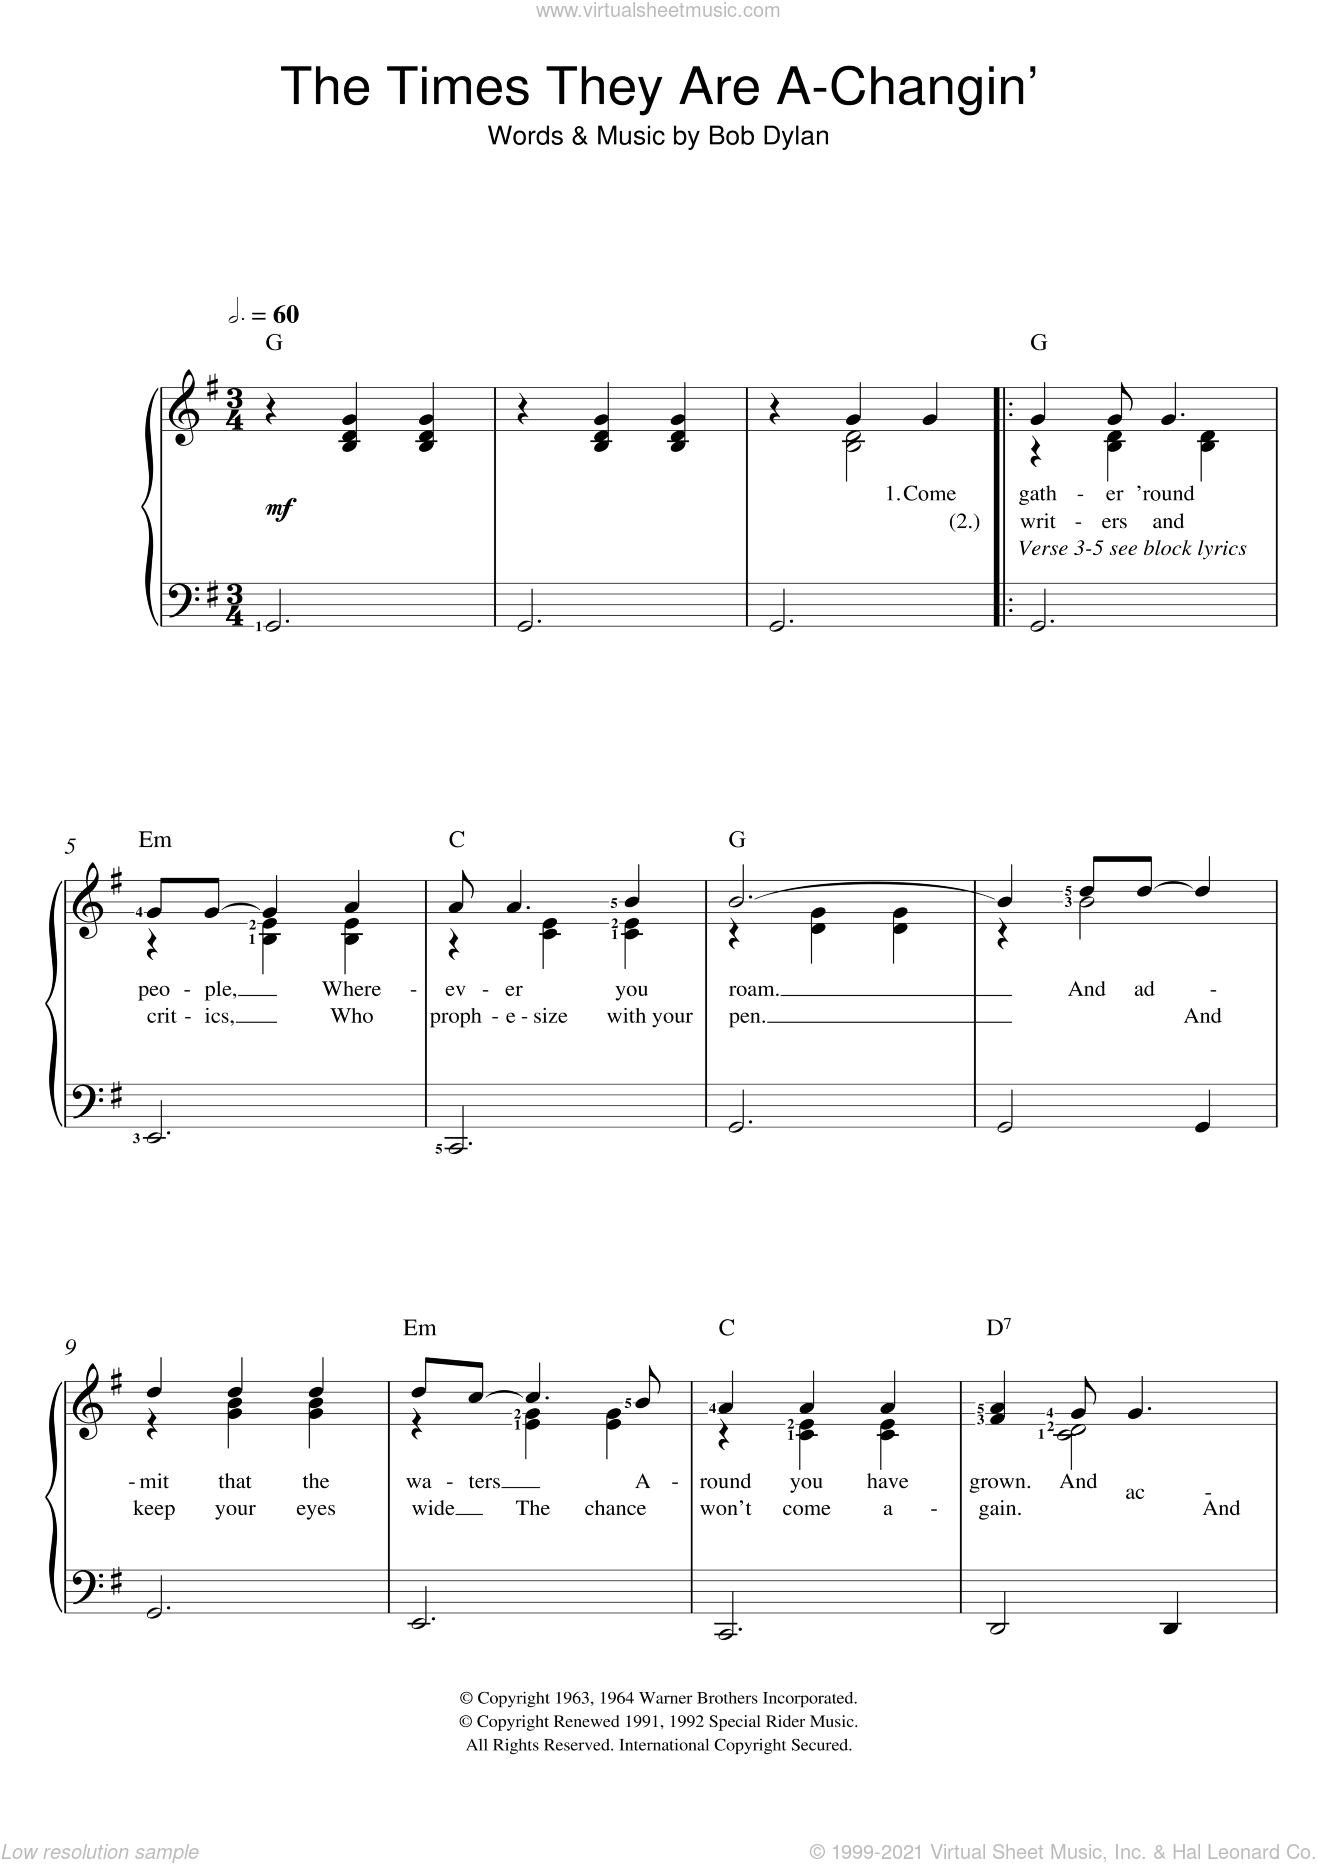 The Times They Are A-Changin' sheet music for voice and piano by Bob Dylan, intermediate skill level